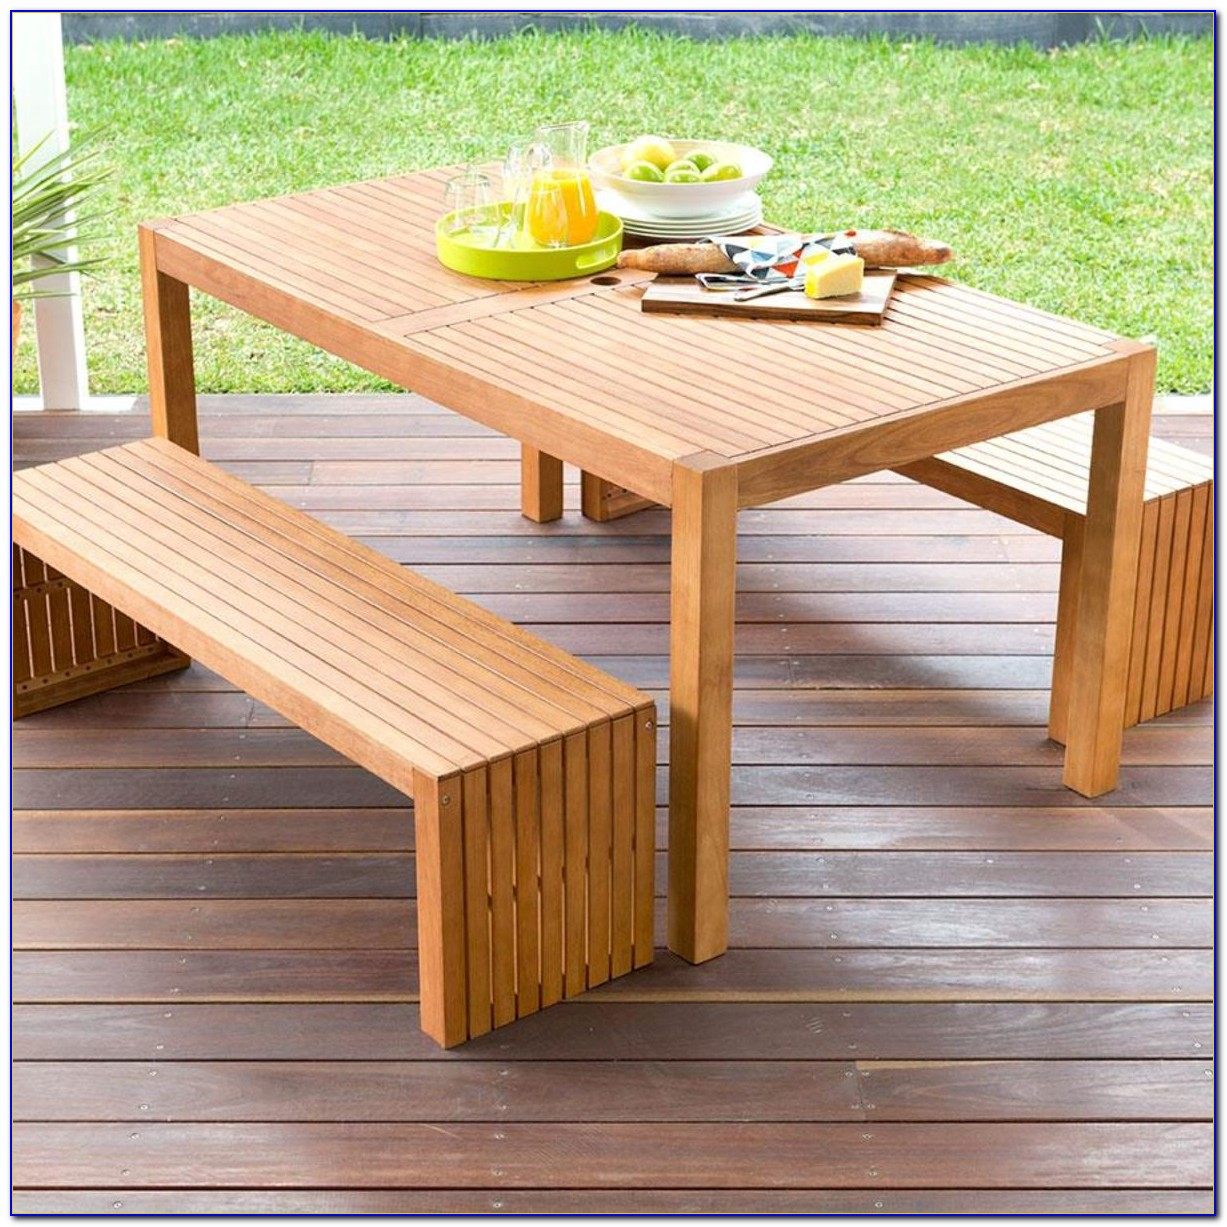 Outdoor Wood Tables And Benches